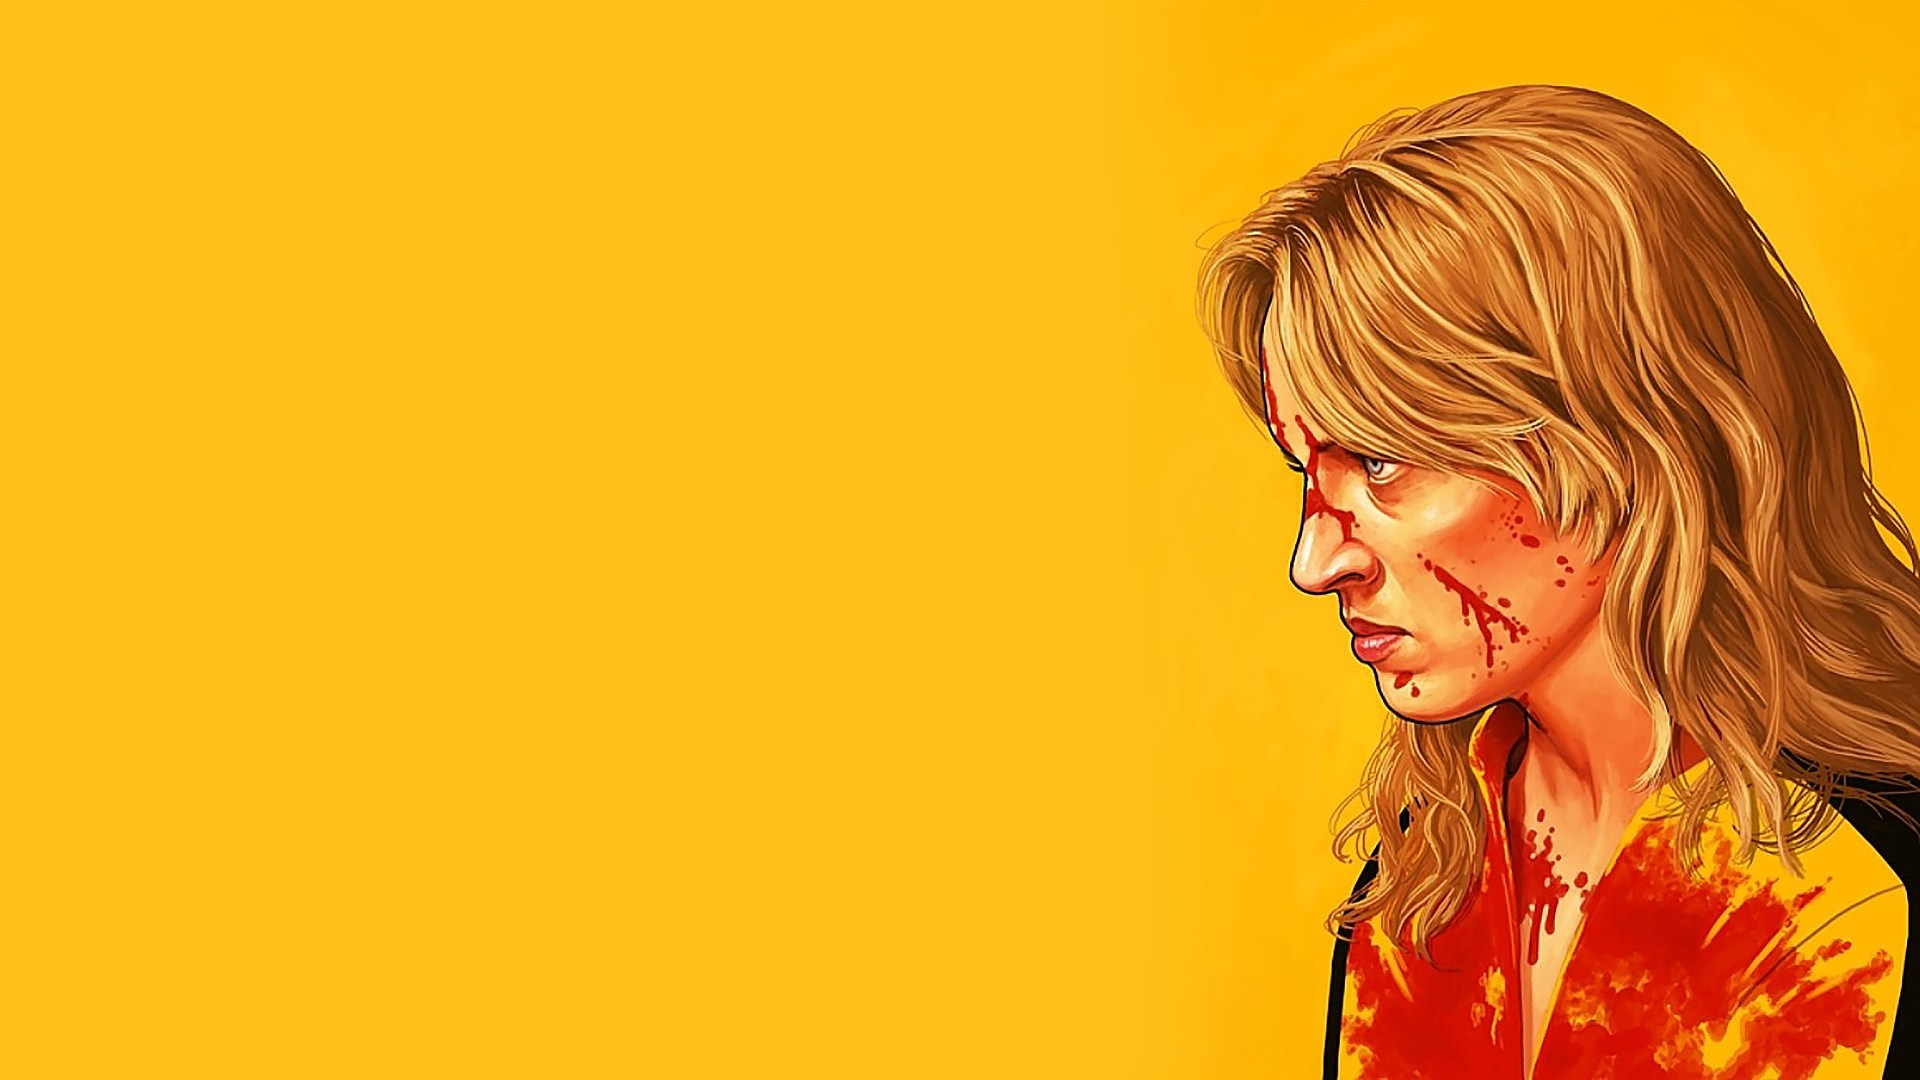 The Ever Resilient Vipers Exploitation And Empowerment In Quentin Tarantino S Kill Bill Vol I The Channel